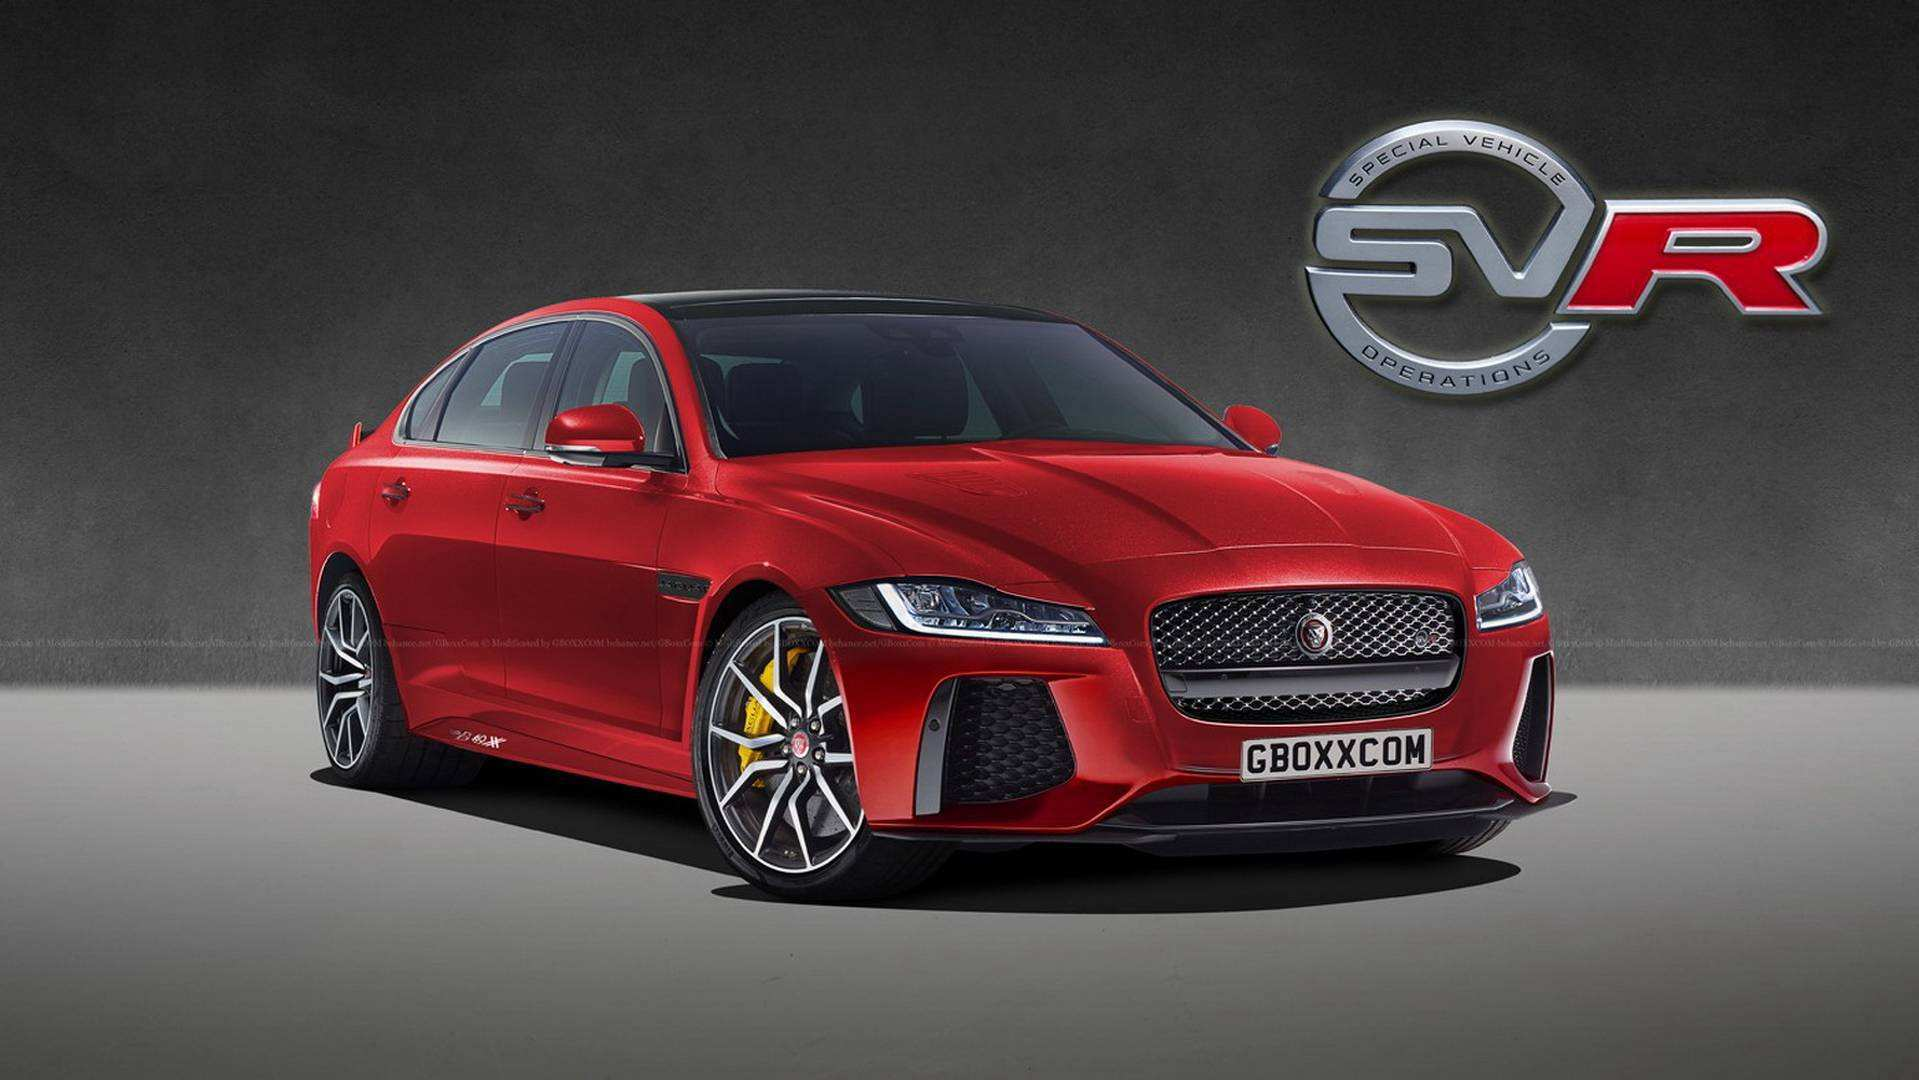 31 The Best 2020 Jaguar Xf Rs Price